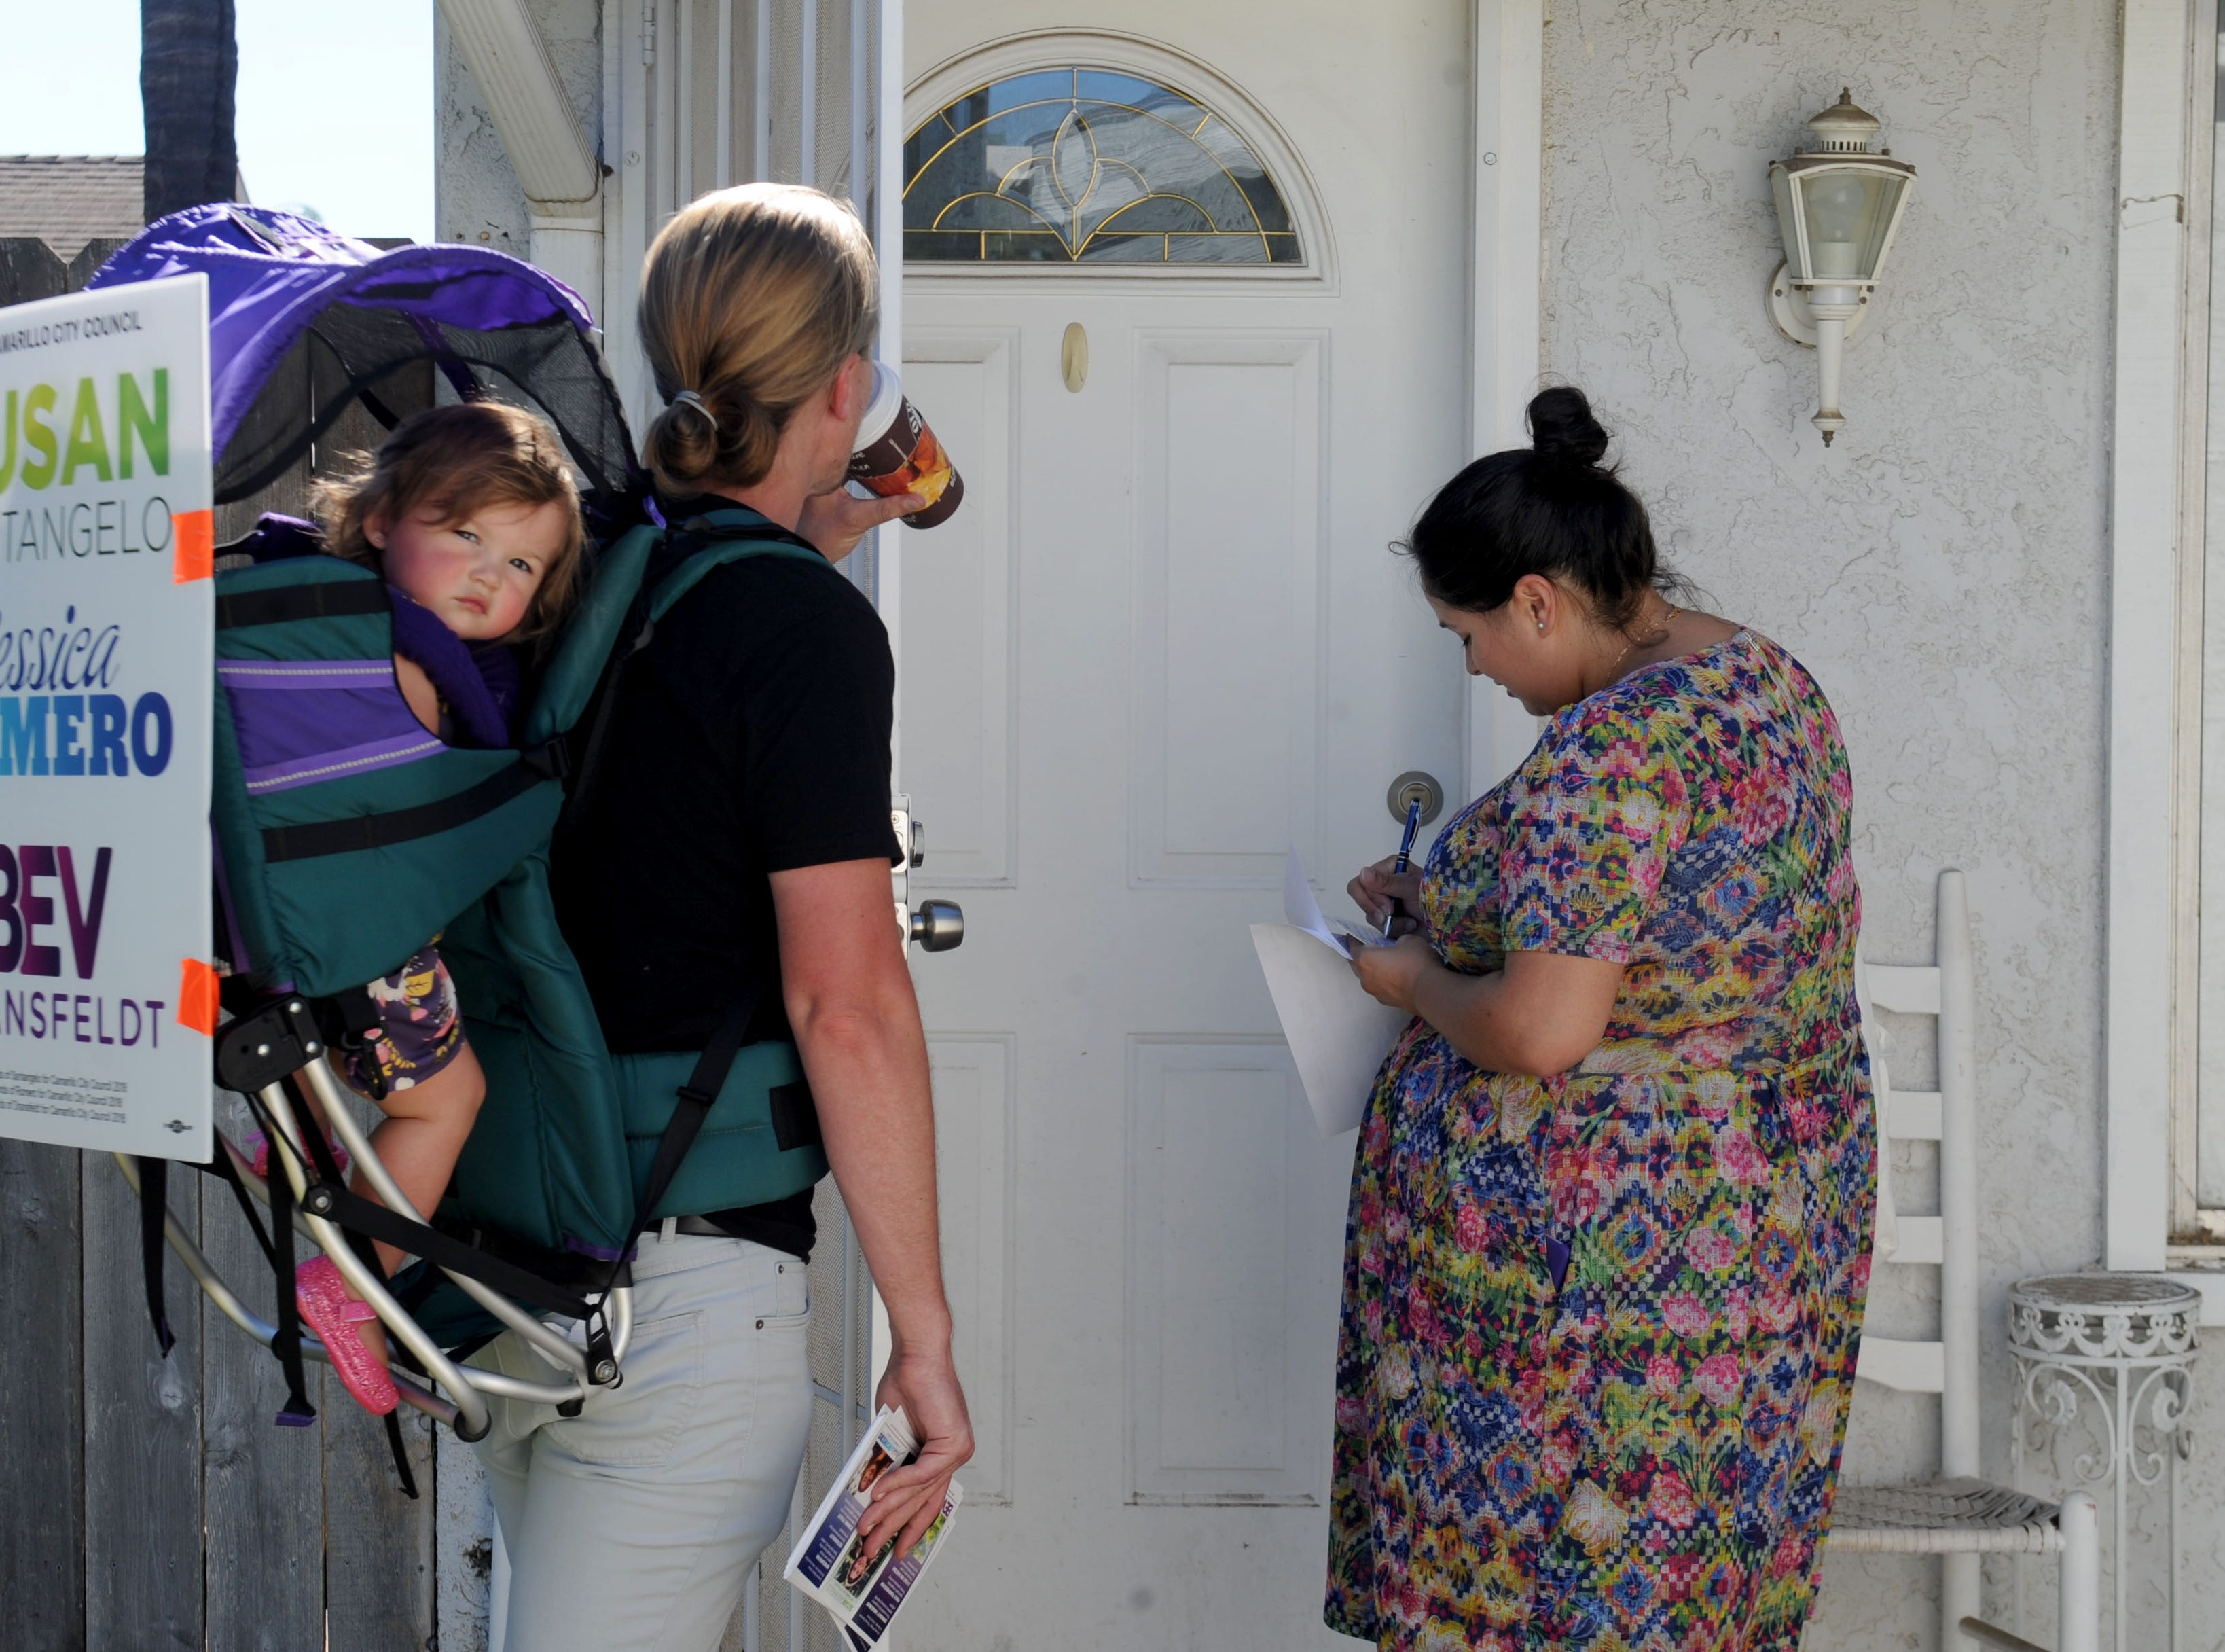 Bev Dransfeldt, right, goes door to door in Camarillo with her husband, Cory Dransfeldt, and daughter Pazita. Bev Dransfeldt, Susan Santangelo and Jessica Romero decided to run as a ticket for Camarillo City Council.